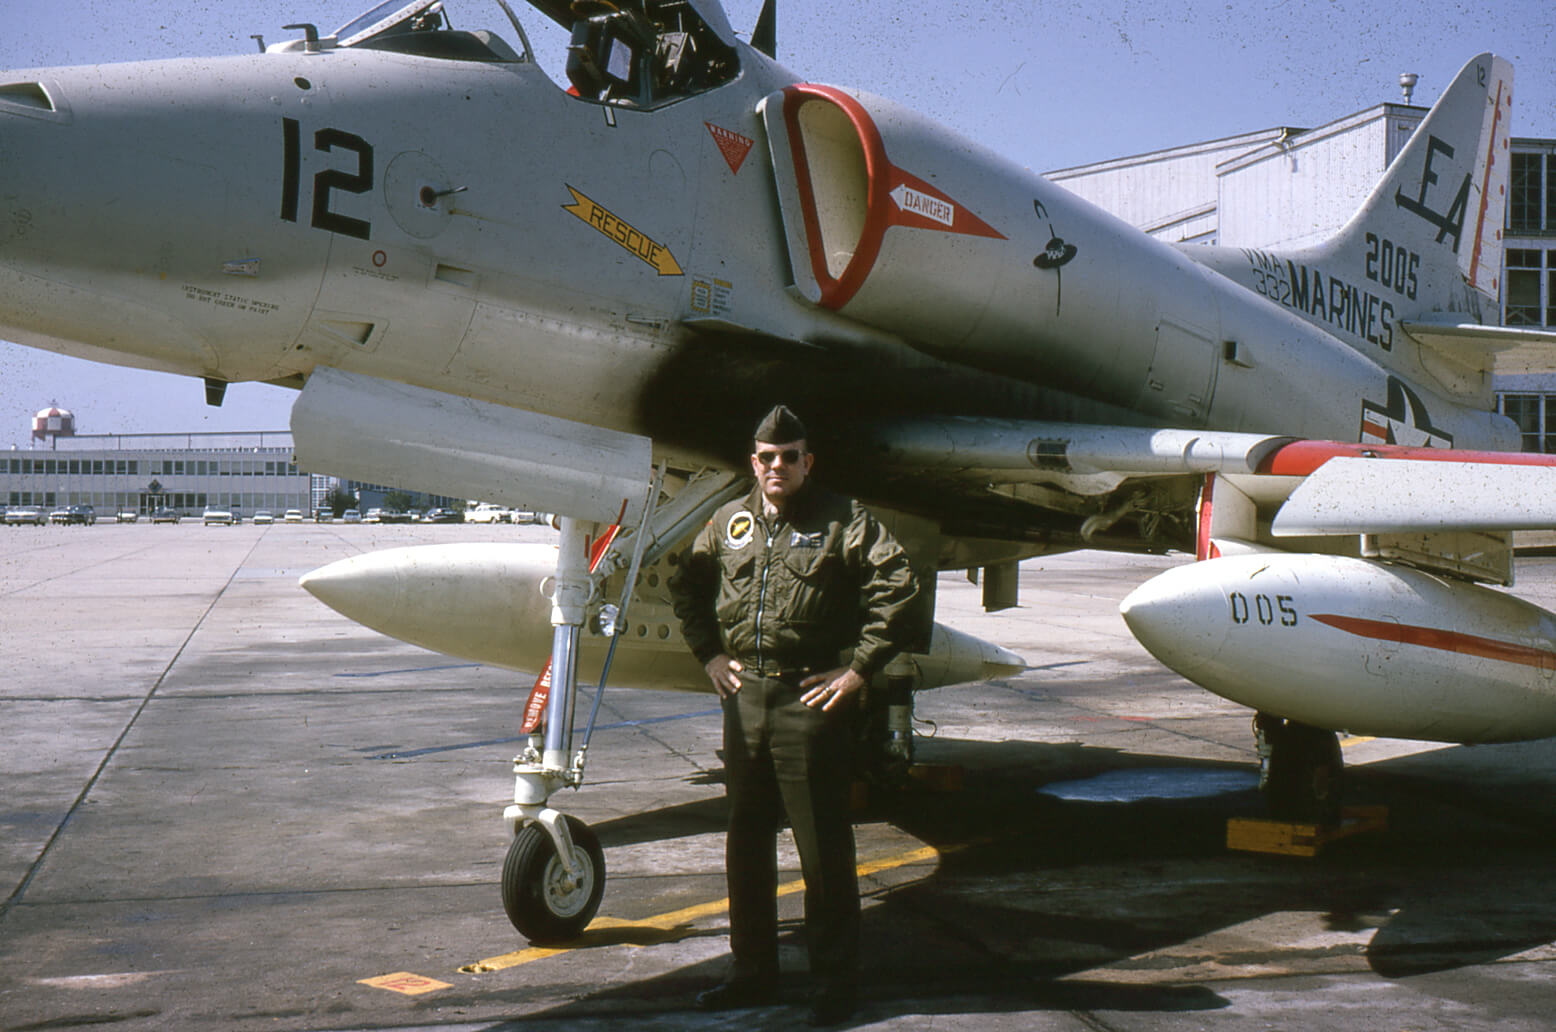 Pilot standing in front of a Marines airplane